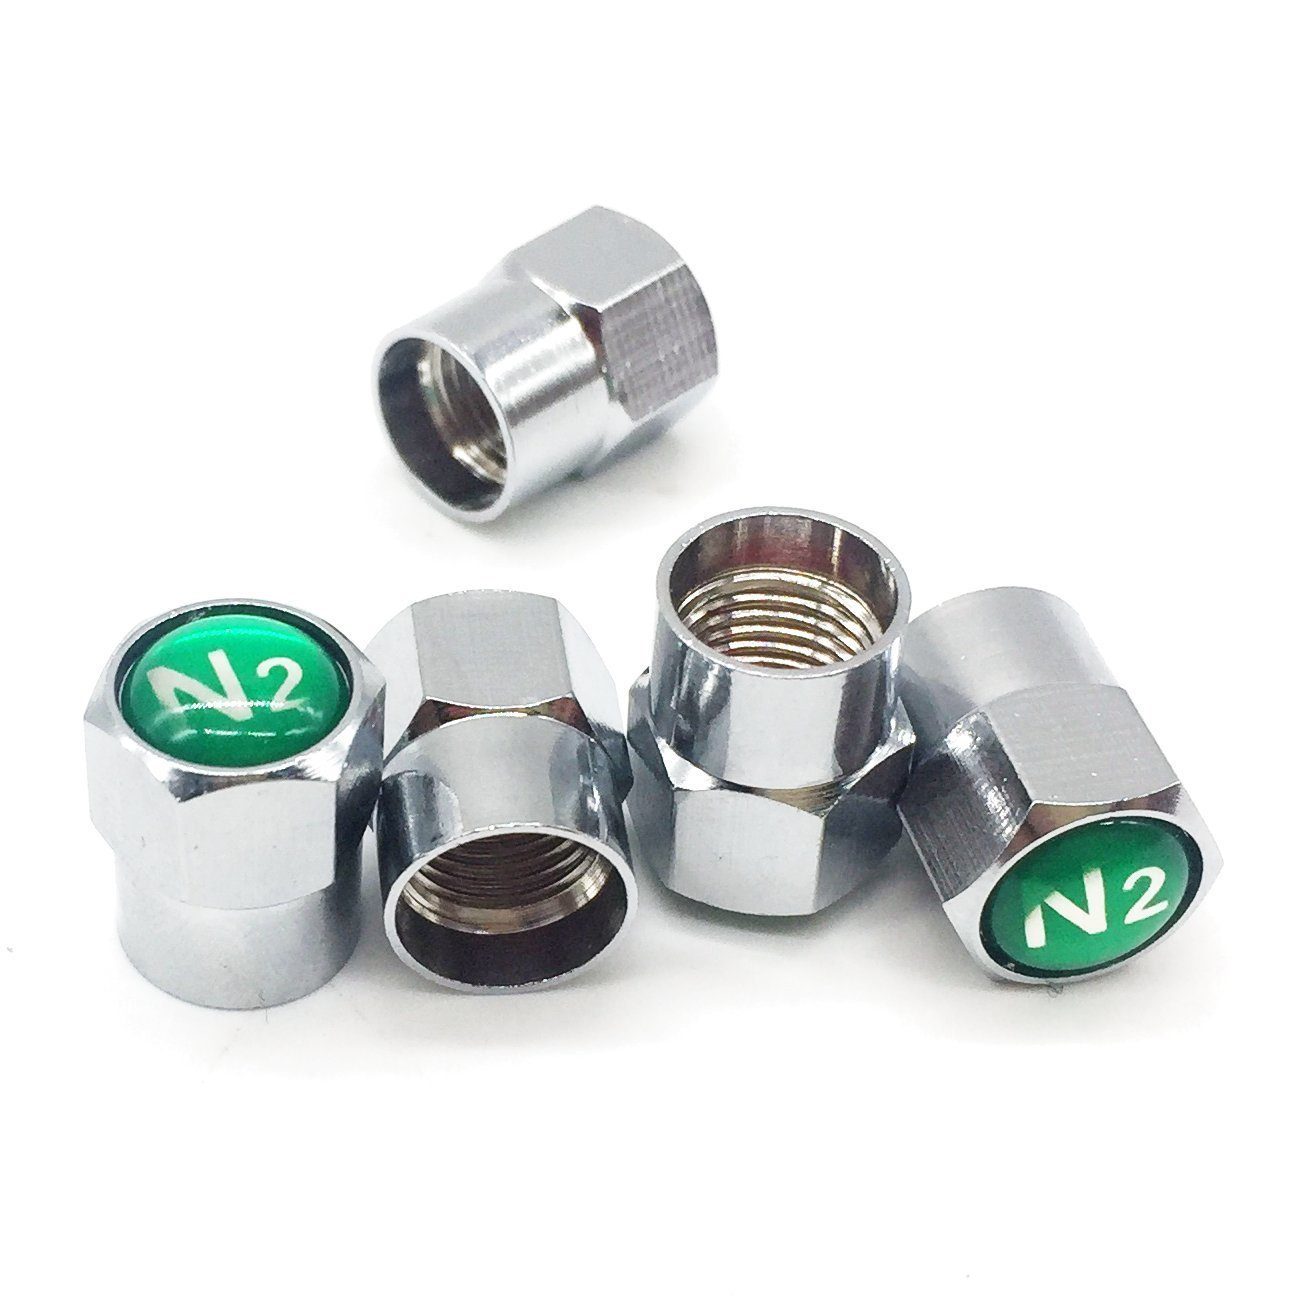 Godeson Chrome Plated Brass Tire Valve Stem Caps N2 Nitrogen Sign Logo on The Top, 5 pcs/Set (Additional 1pcs Spare). GD-BV01B